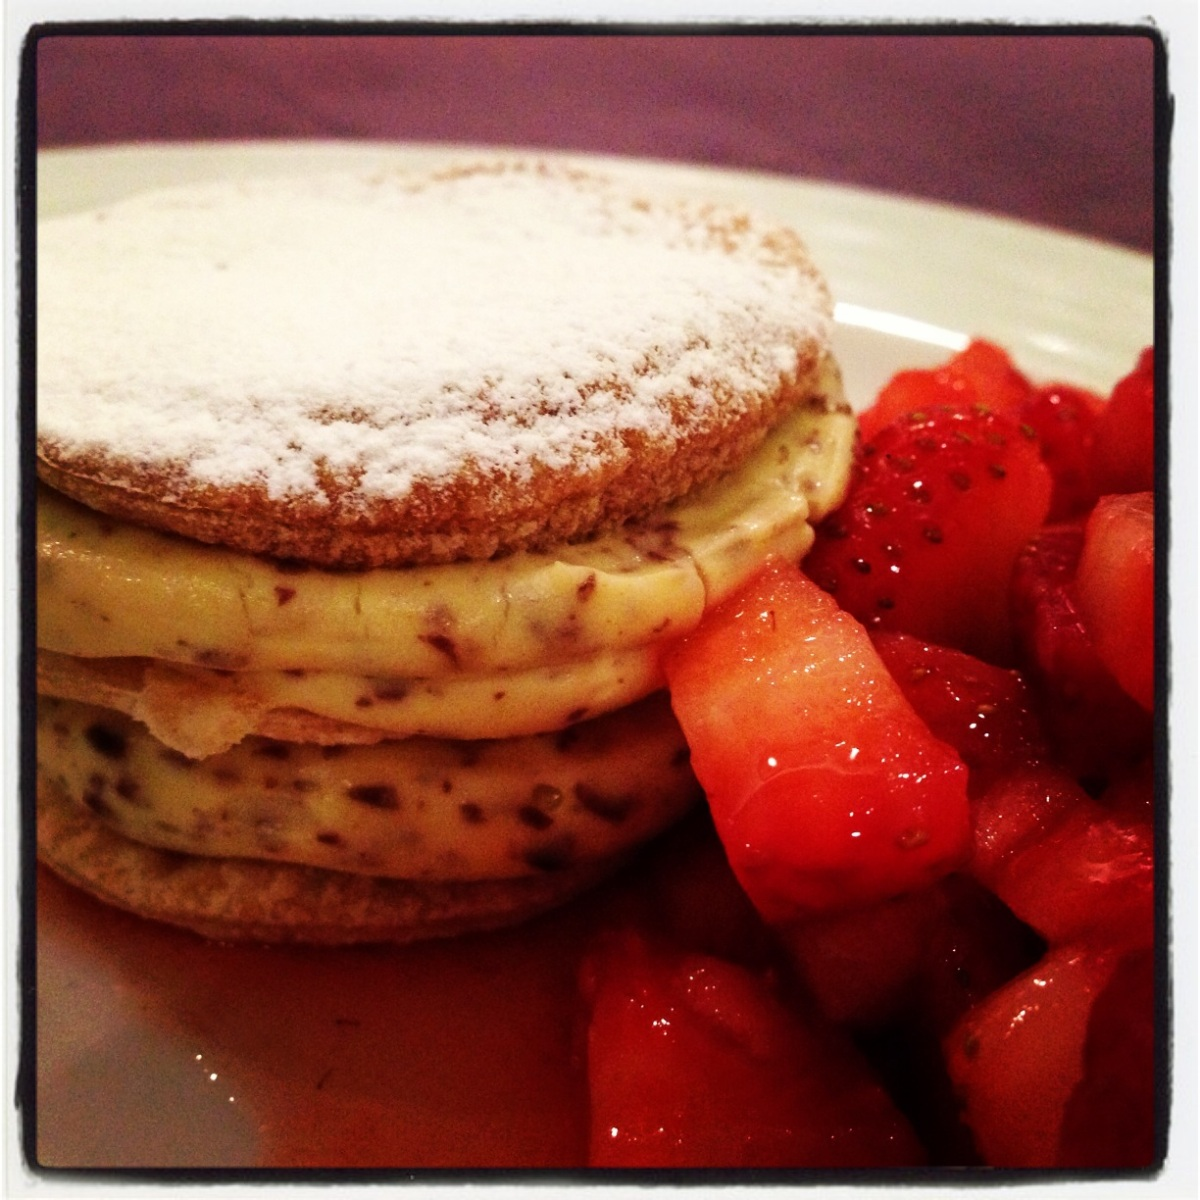 My beloved Millefeuille with soft pastry cream and chocolate